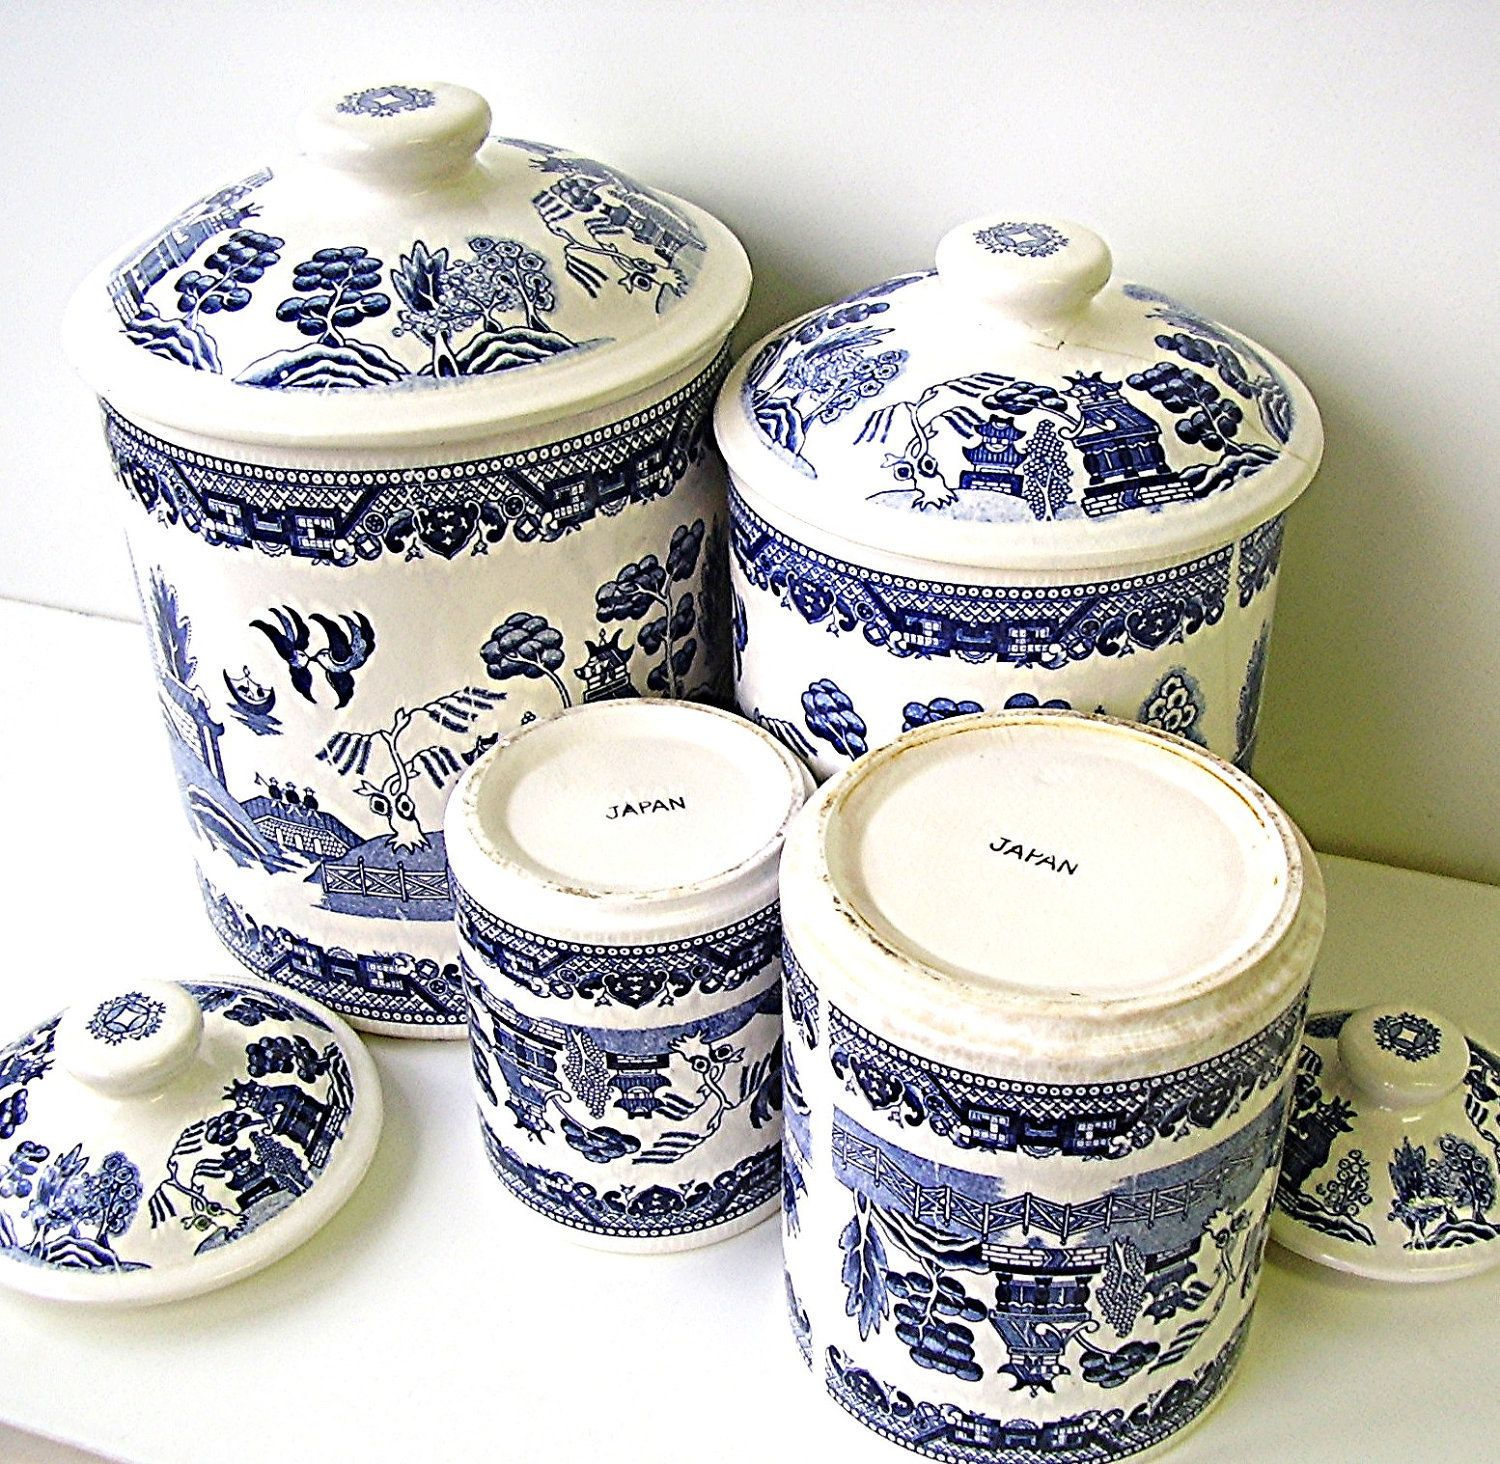 vintage blue willow china canister set blue and white ironstone vintage blue willow china canister set blue and white ironstone willow ware